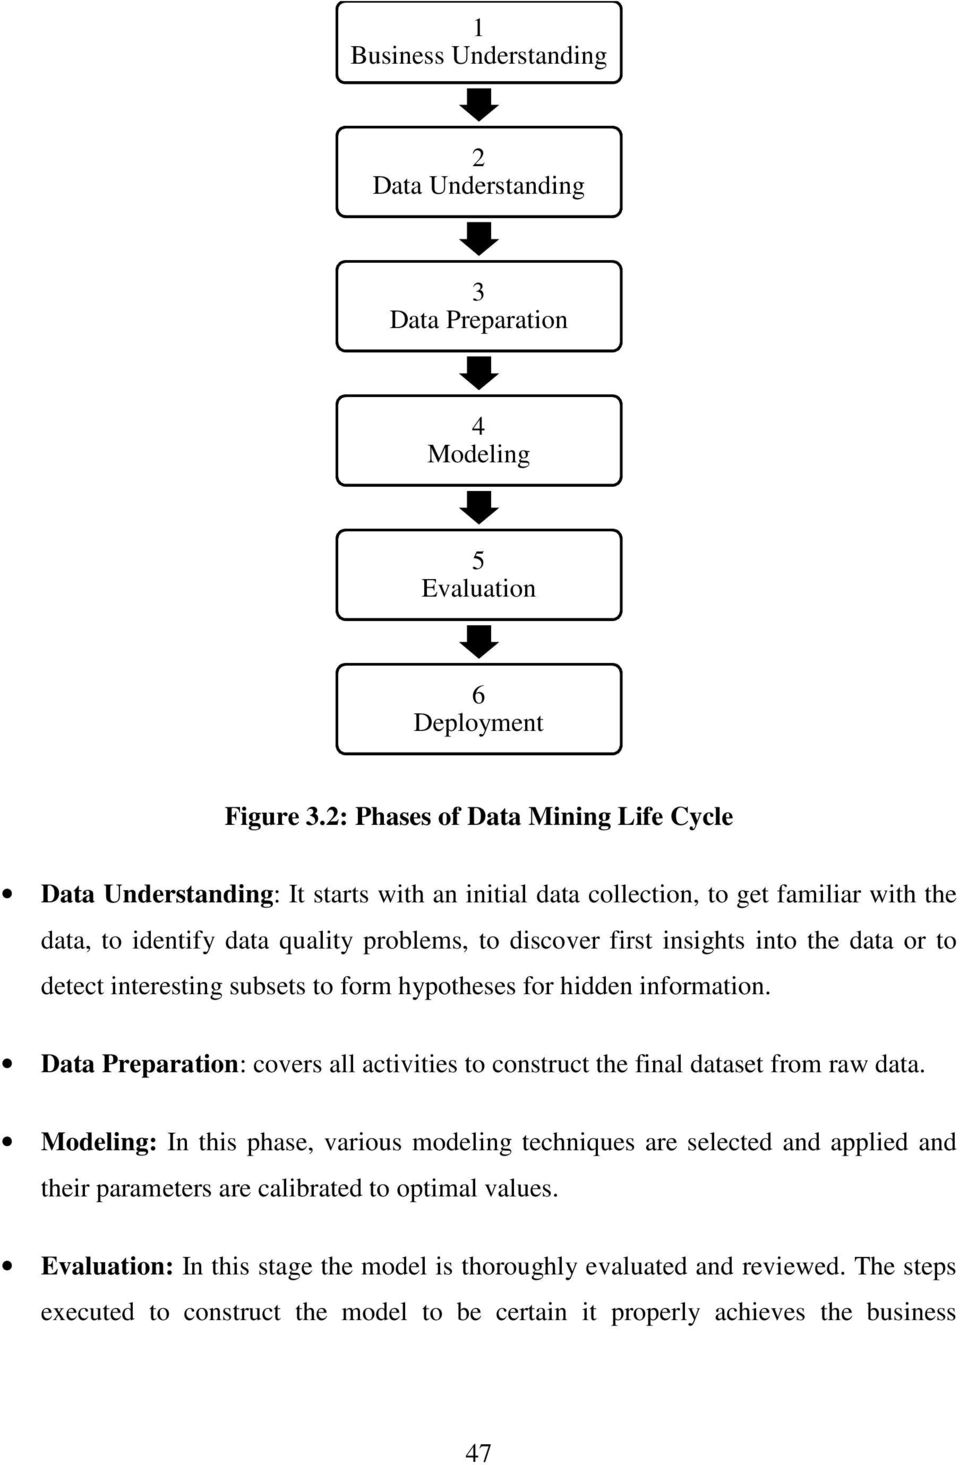 into the data or to detect interesting subsets to form hypotheses for hidden information. Data Preparation: covers all activities to construct the final dataset from raw data.